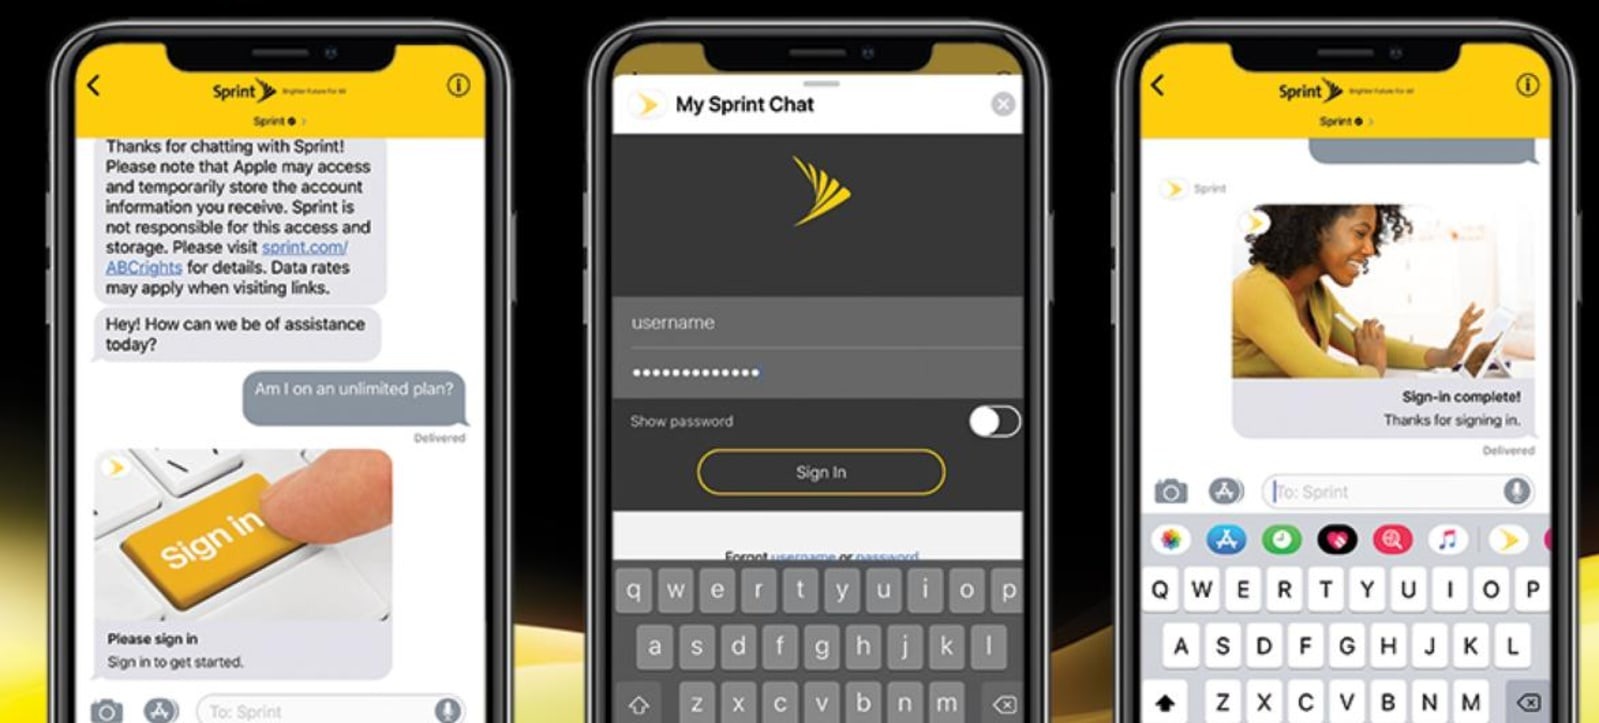 Apple Business Chat for Sprint